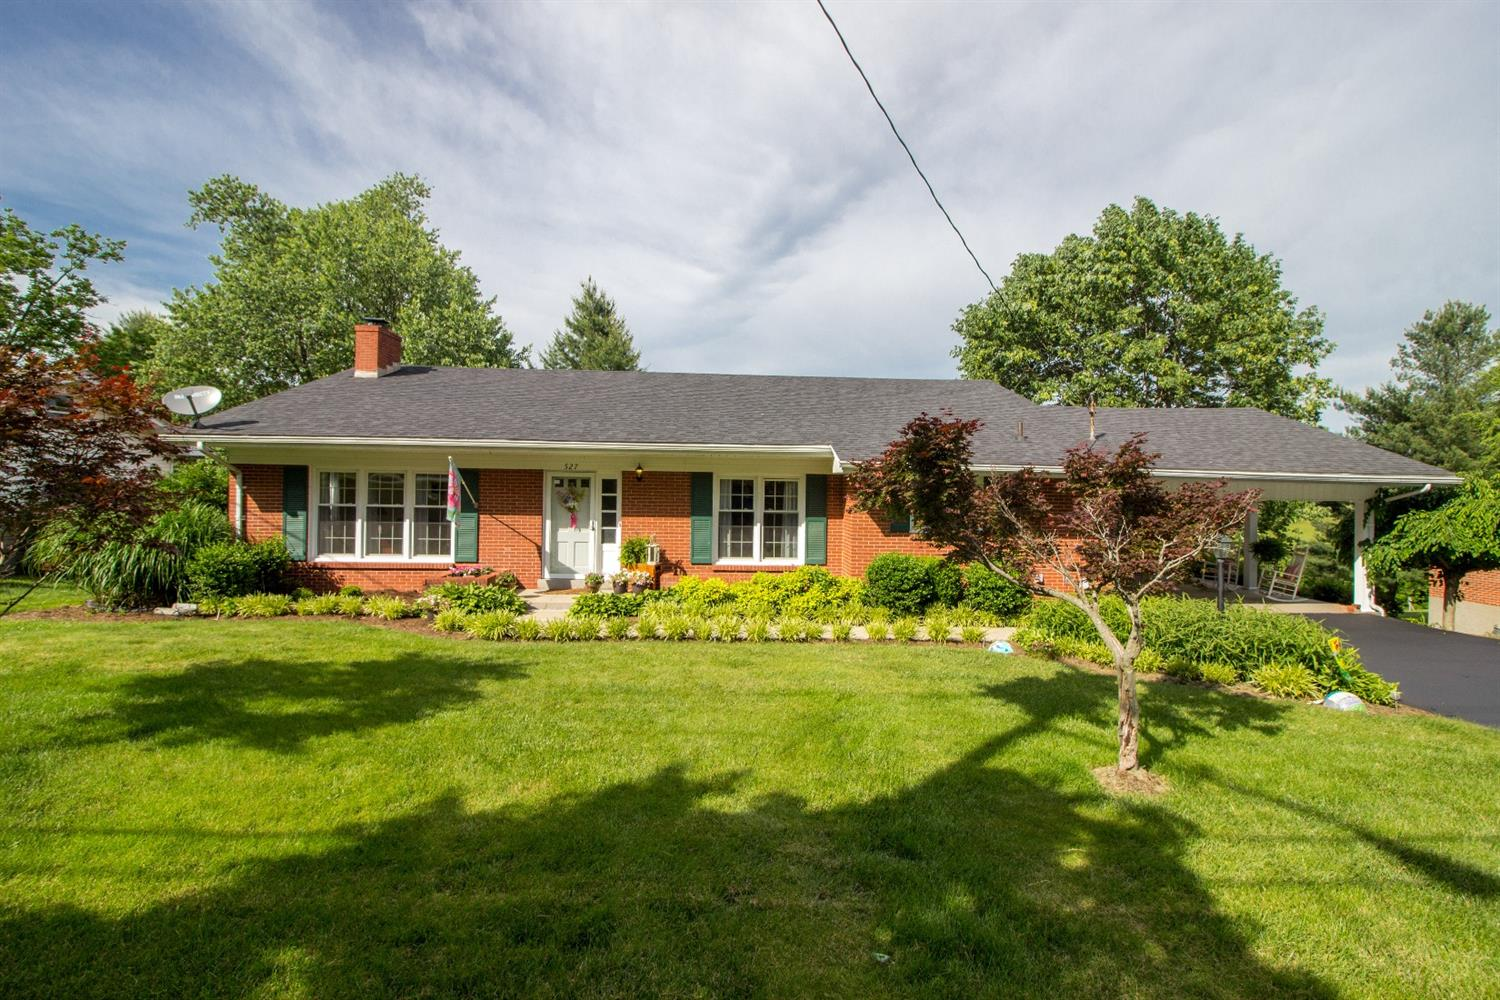 Featuring%20527%20Dogwood%20Drive!%20%20Meticulously%20maintained,%20recently%20renovated%20kitchen%20and%20within%20walking%20distance%20to%20all%20that%20historic%20Danville%20has%20to%20offer!%20%20This%20home%20features%204%20bedrooms,%202%201/2%20baths%20and%20a%20backyard%20entertaining%20area%20that%20your%20friends%20will%20be%20envious%20of!